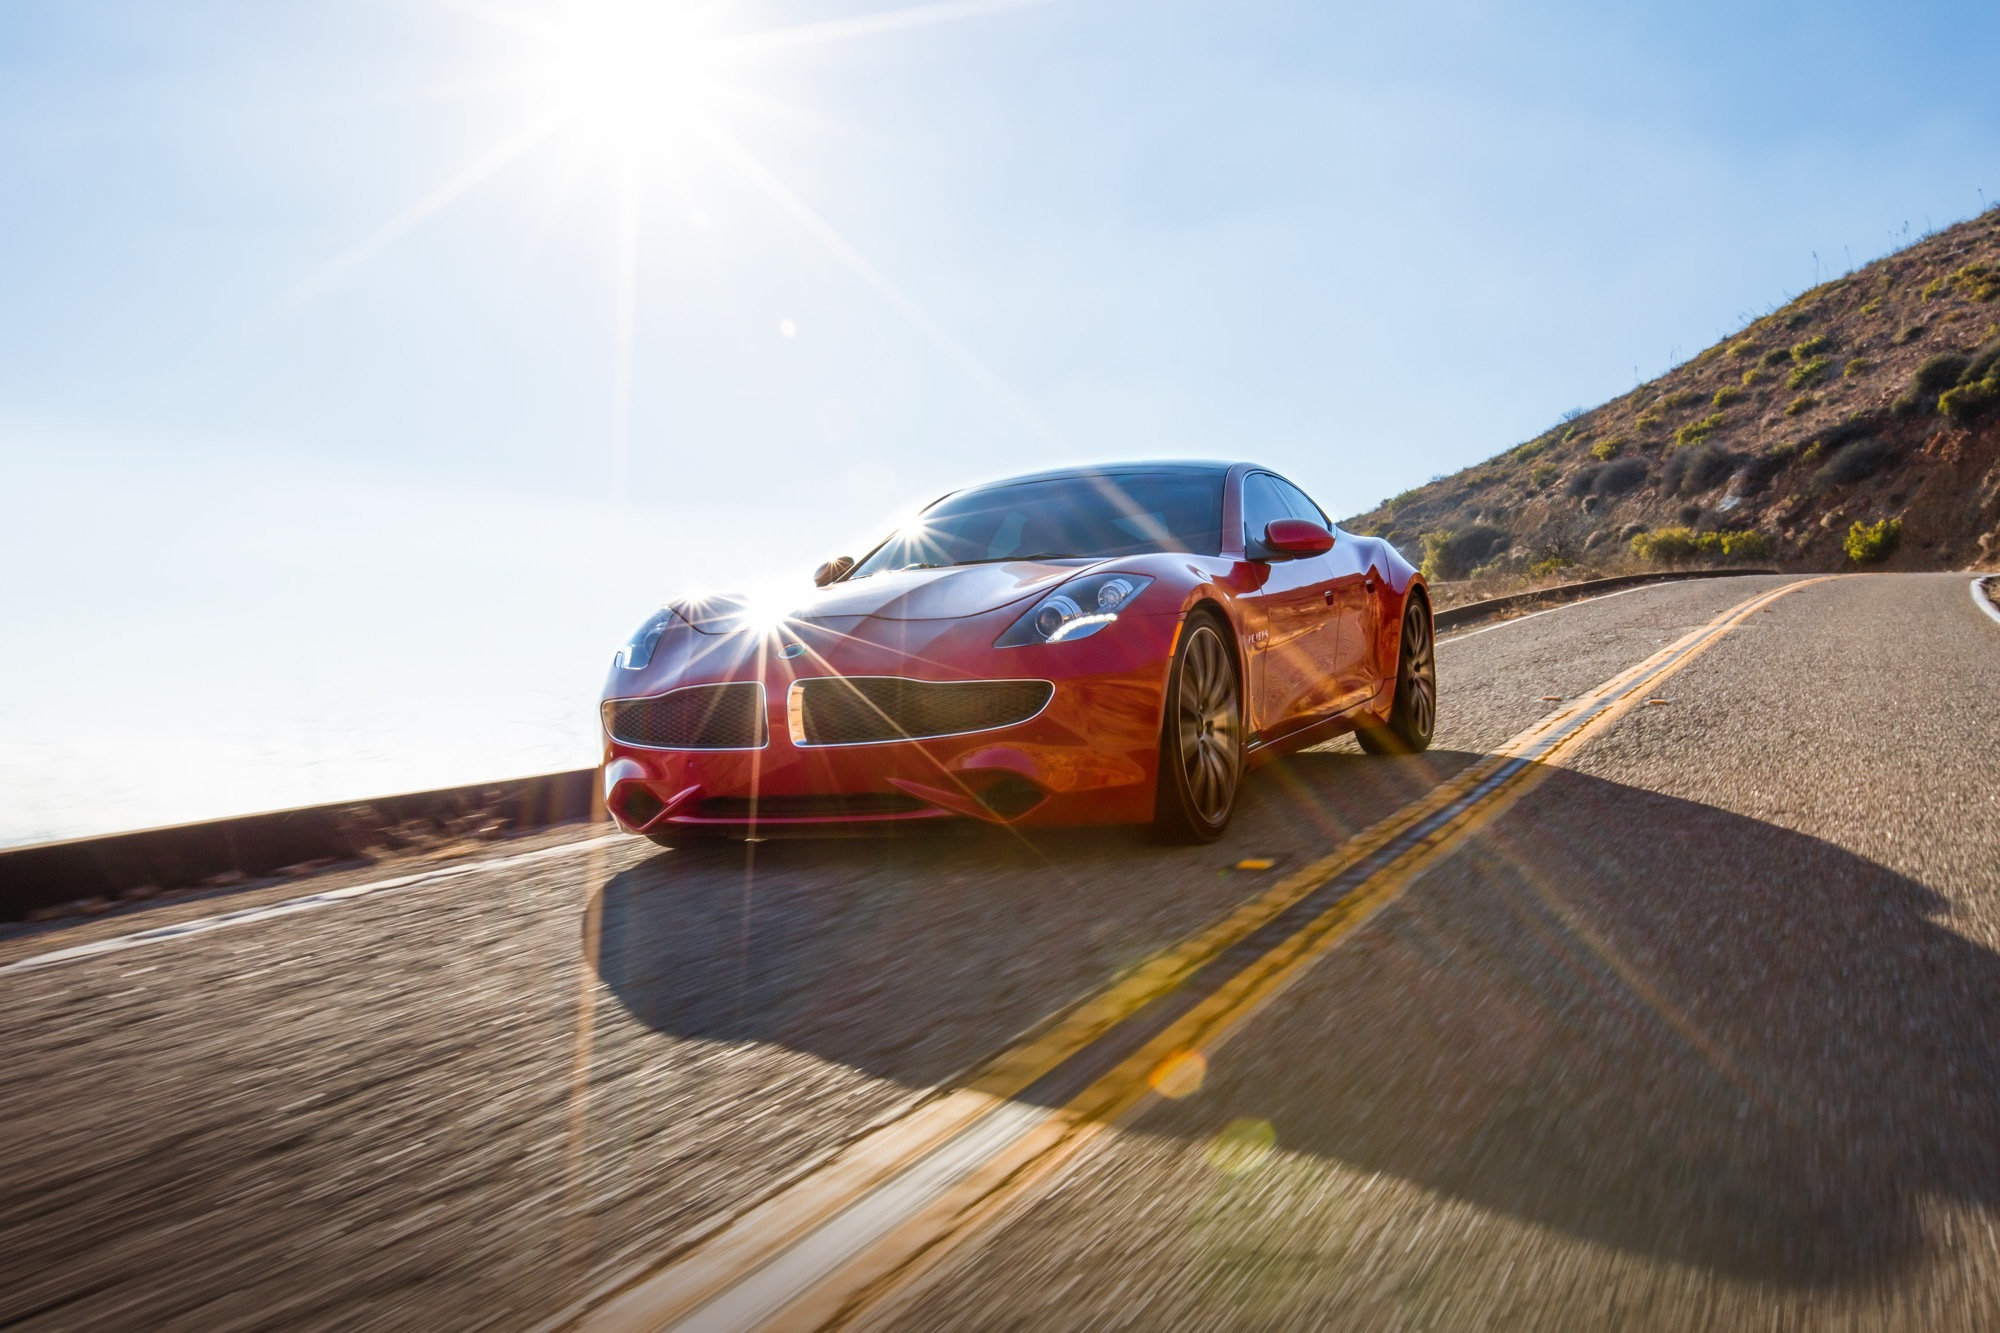 2017 Karma Revero starts at $130,000, and more new details ...